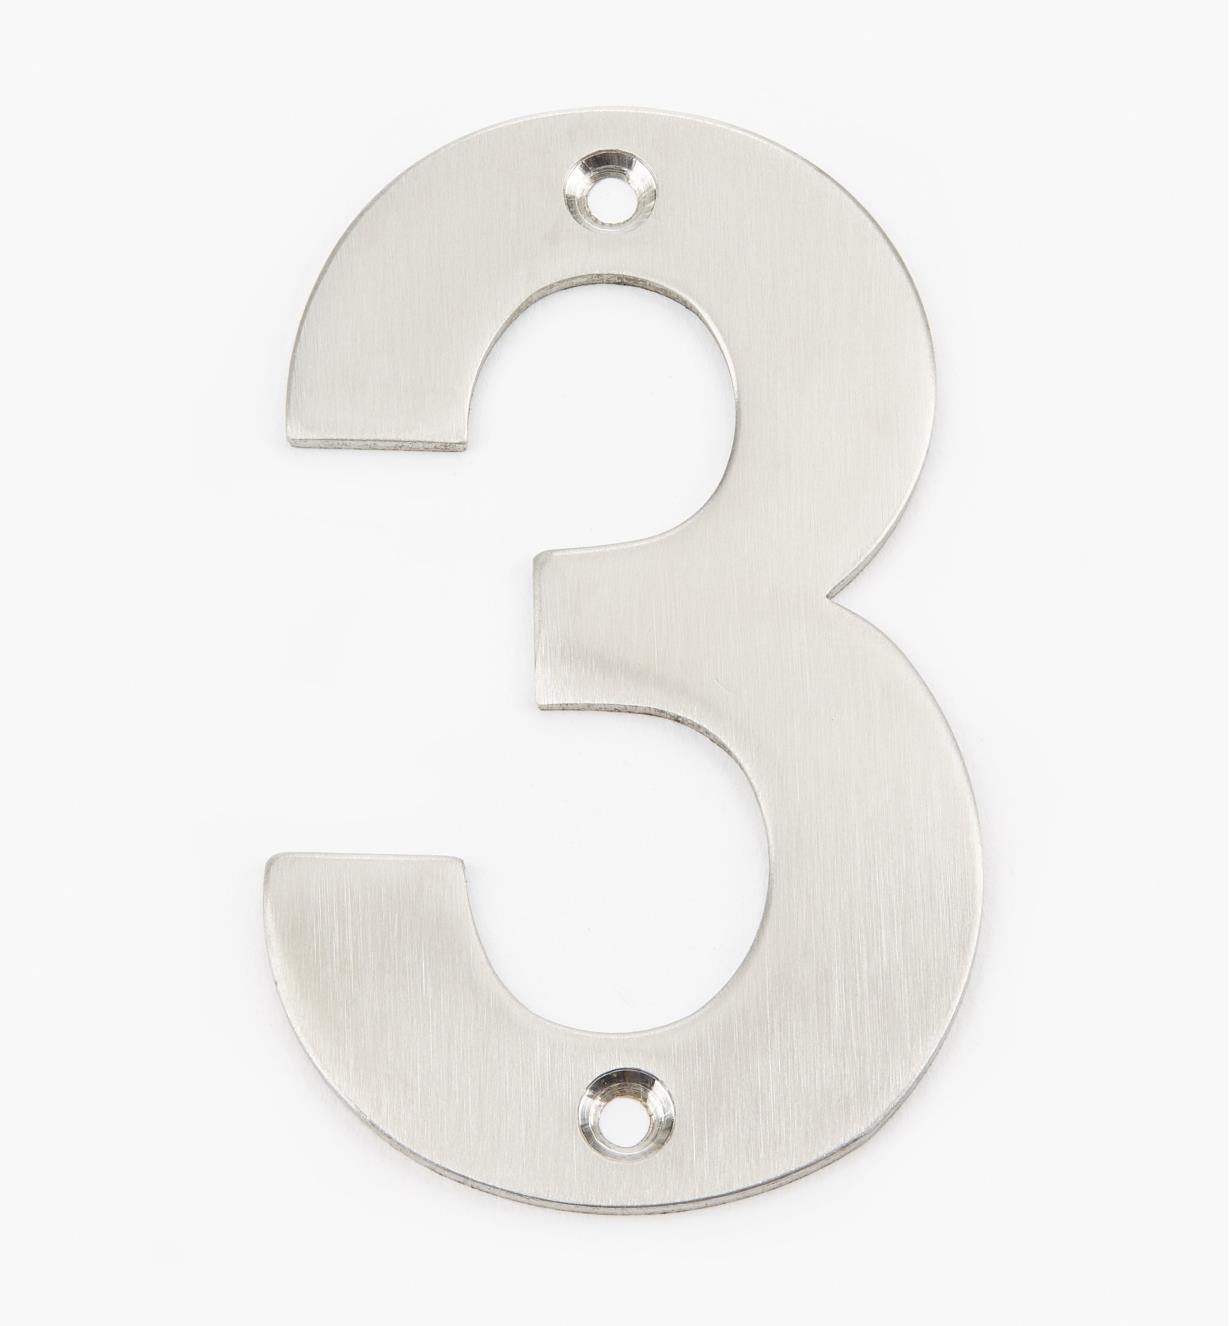 00W0883 - 100mm Stainless-Steel House Number - 3